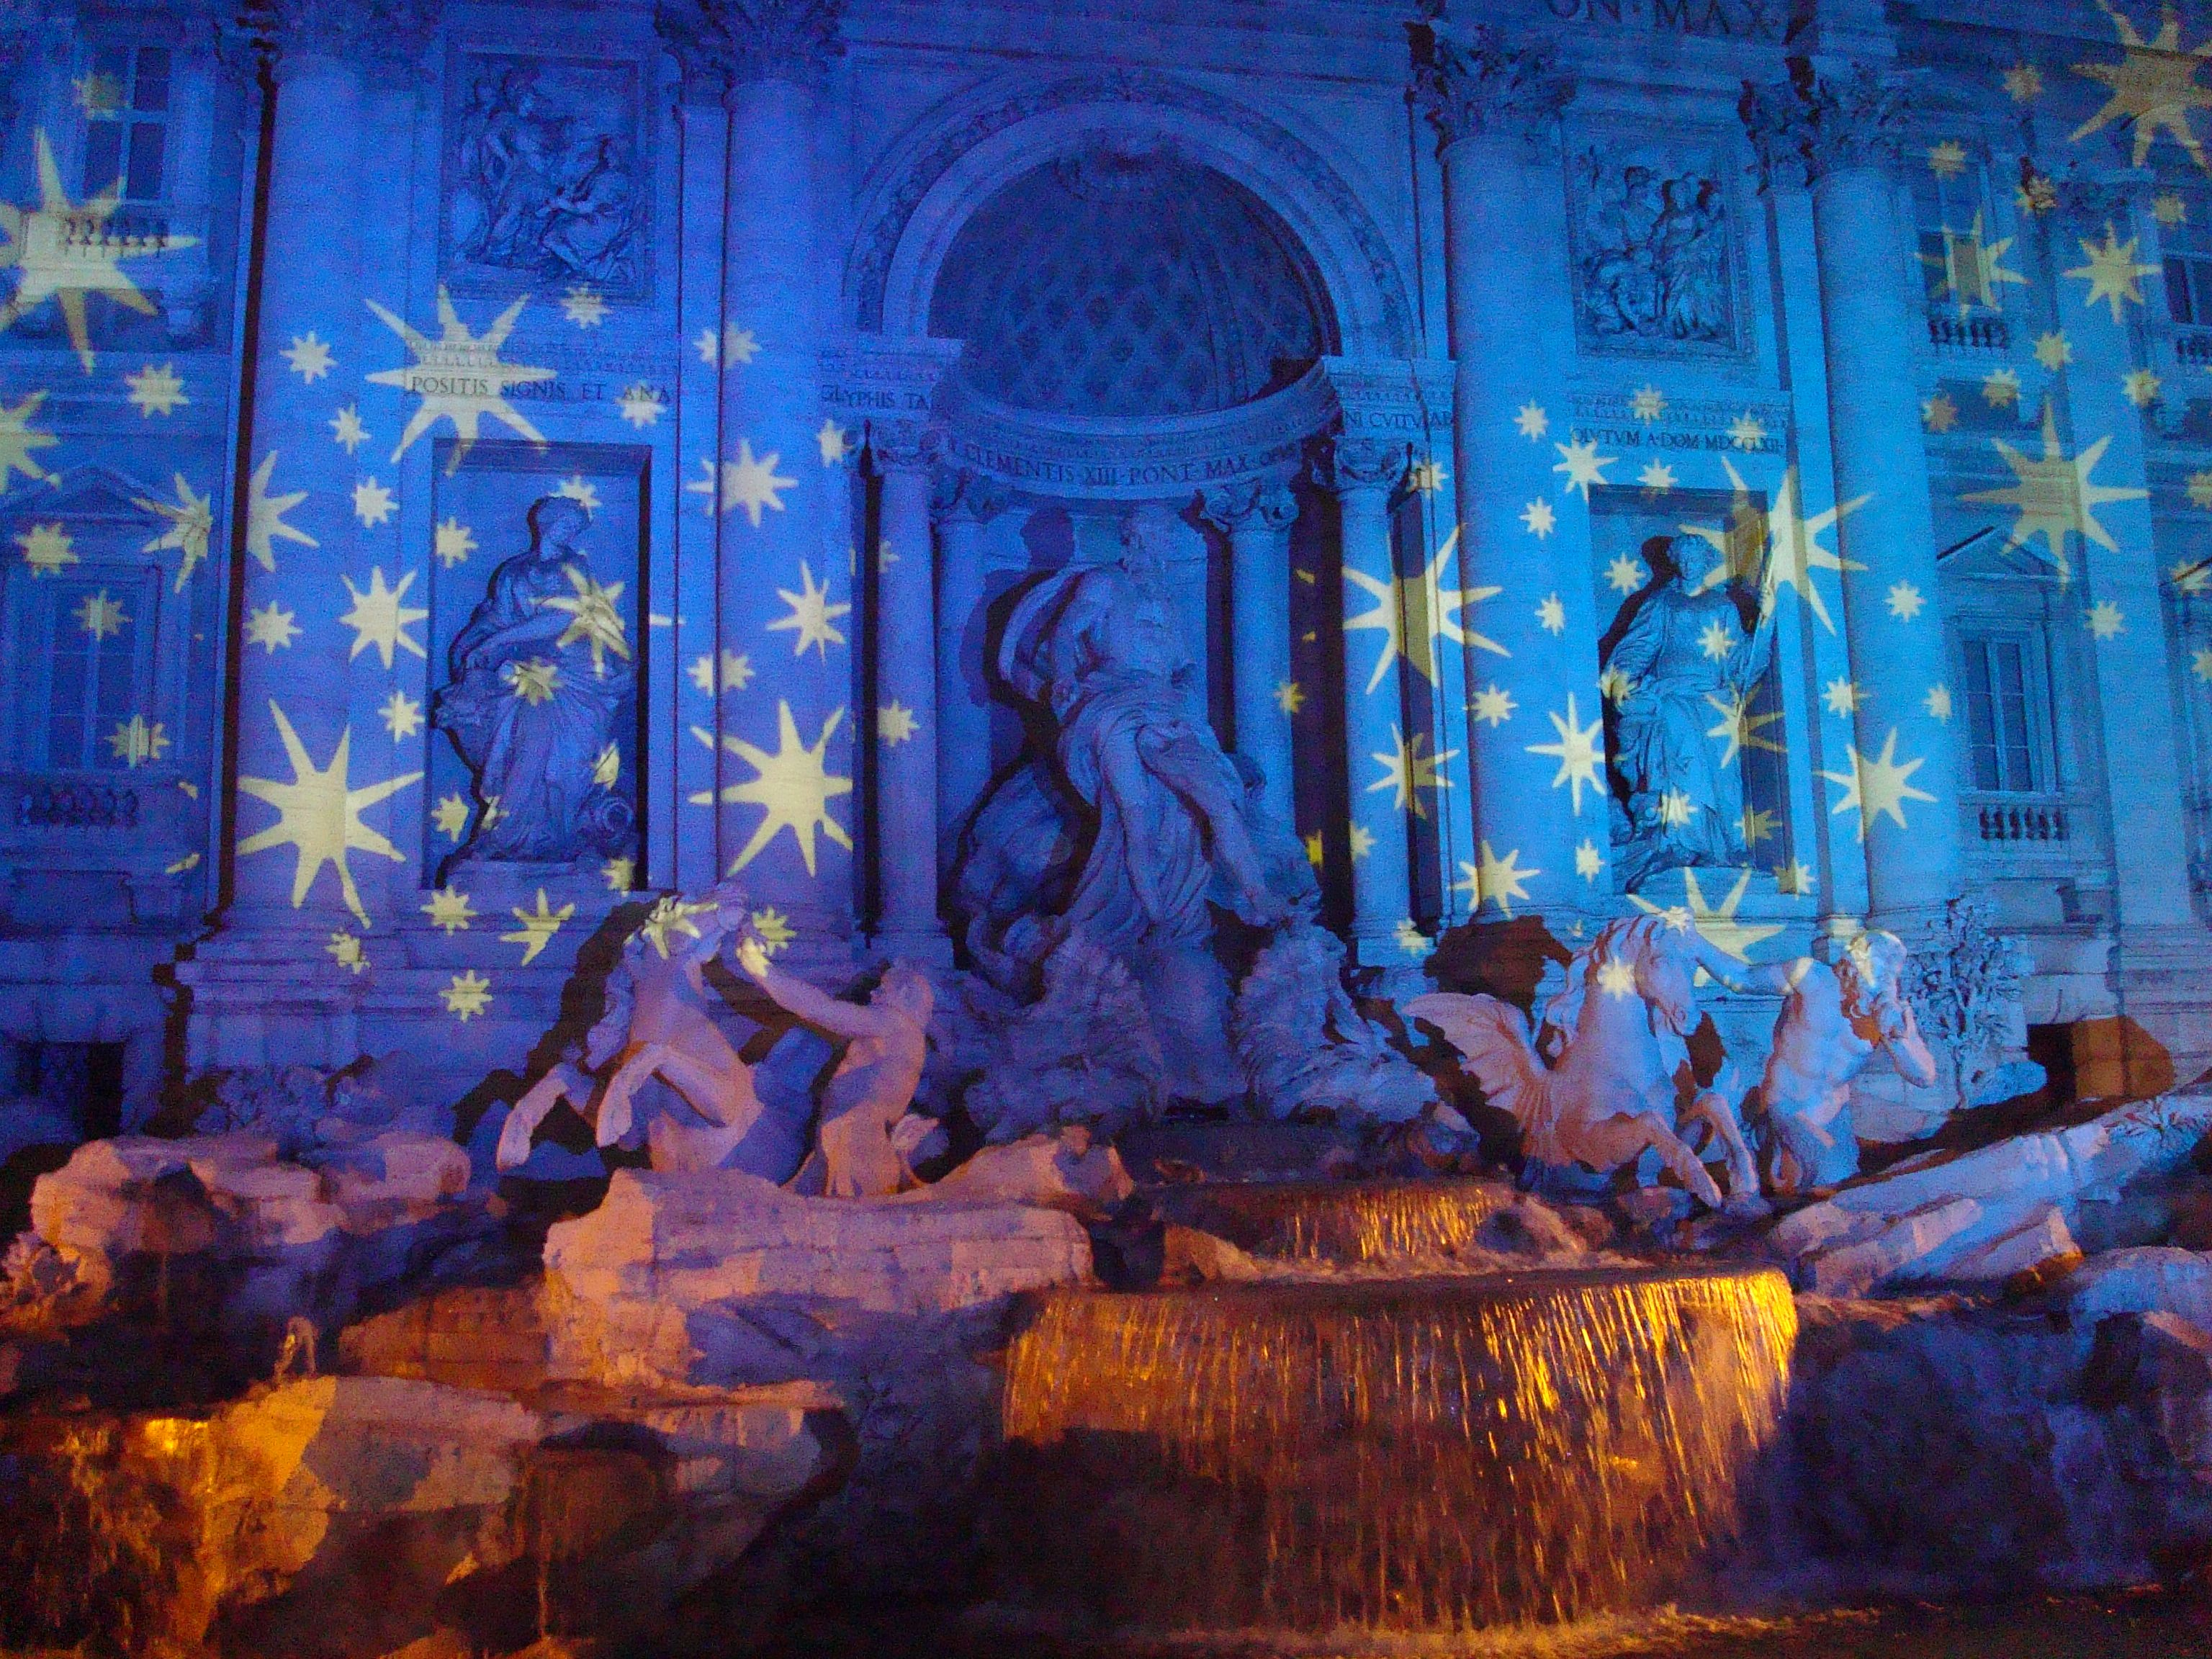 Trevi Fountain by night in Rome